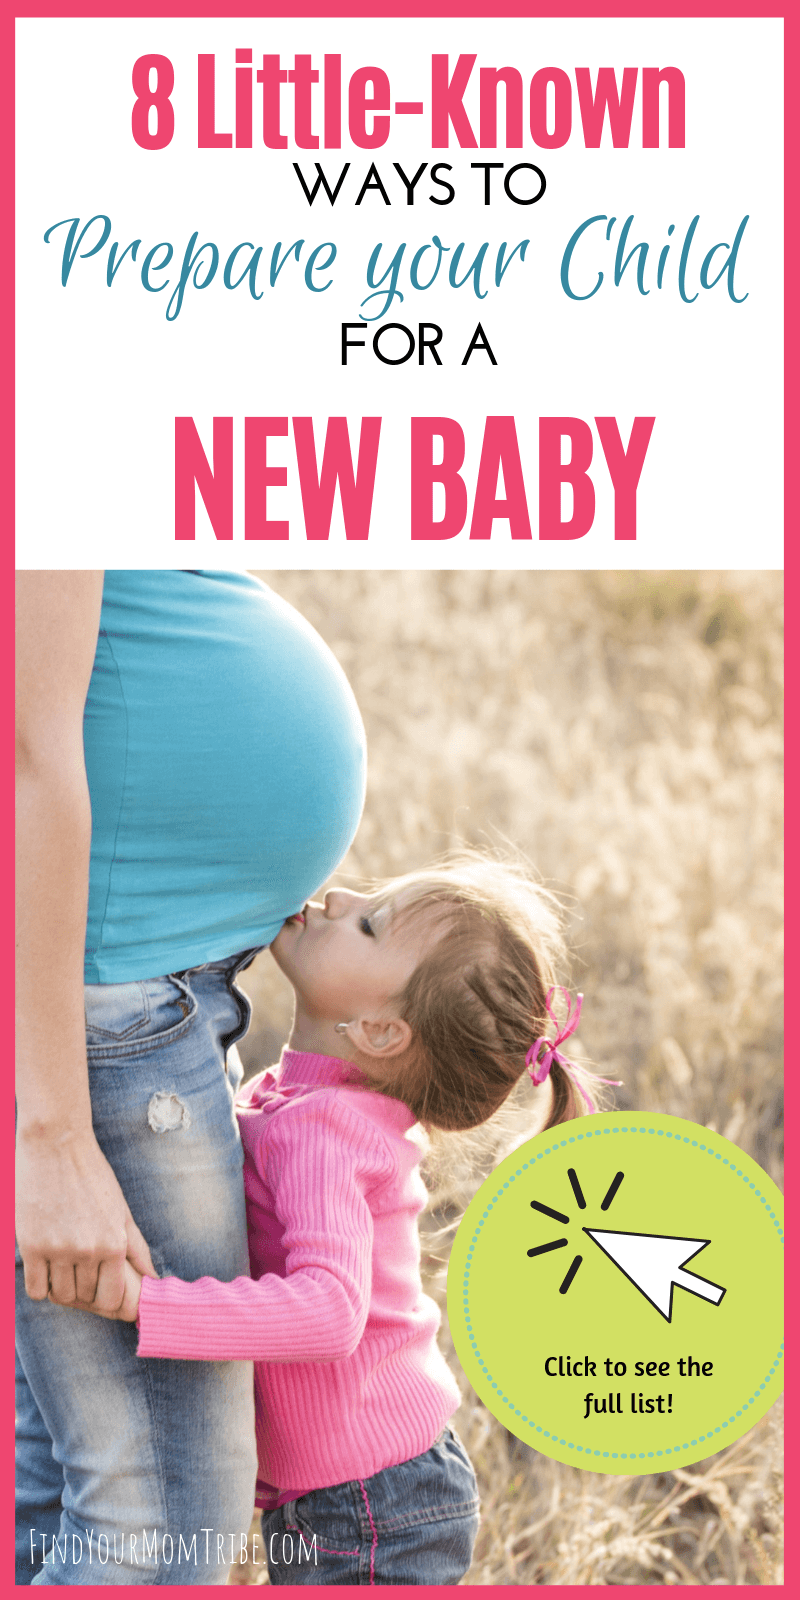 Nervous about how to prepare your toddler for new baby? Check out these 8 little-known tricks for preparing your child for a new baby to help them adjust for a smoother transition. #newbaby #siblings #findyourmomtribe